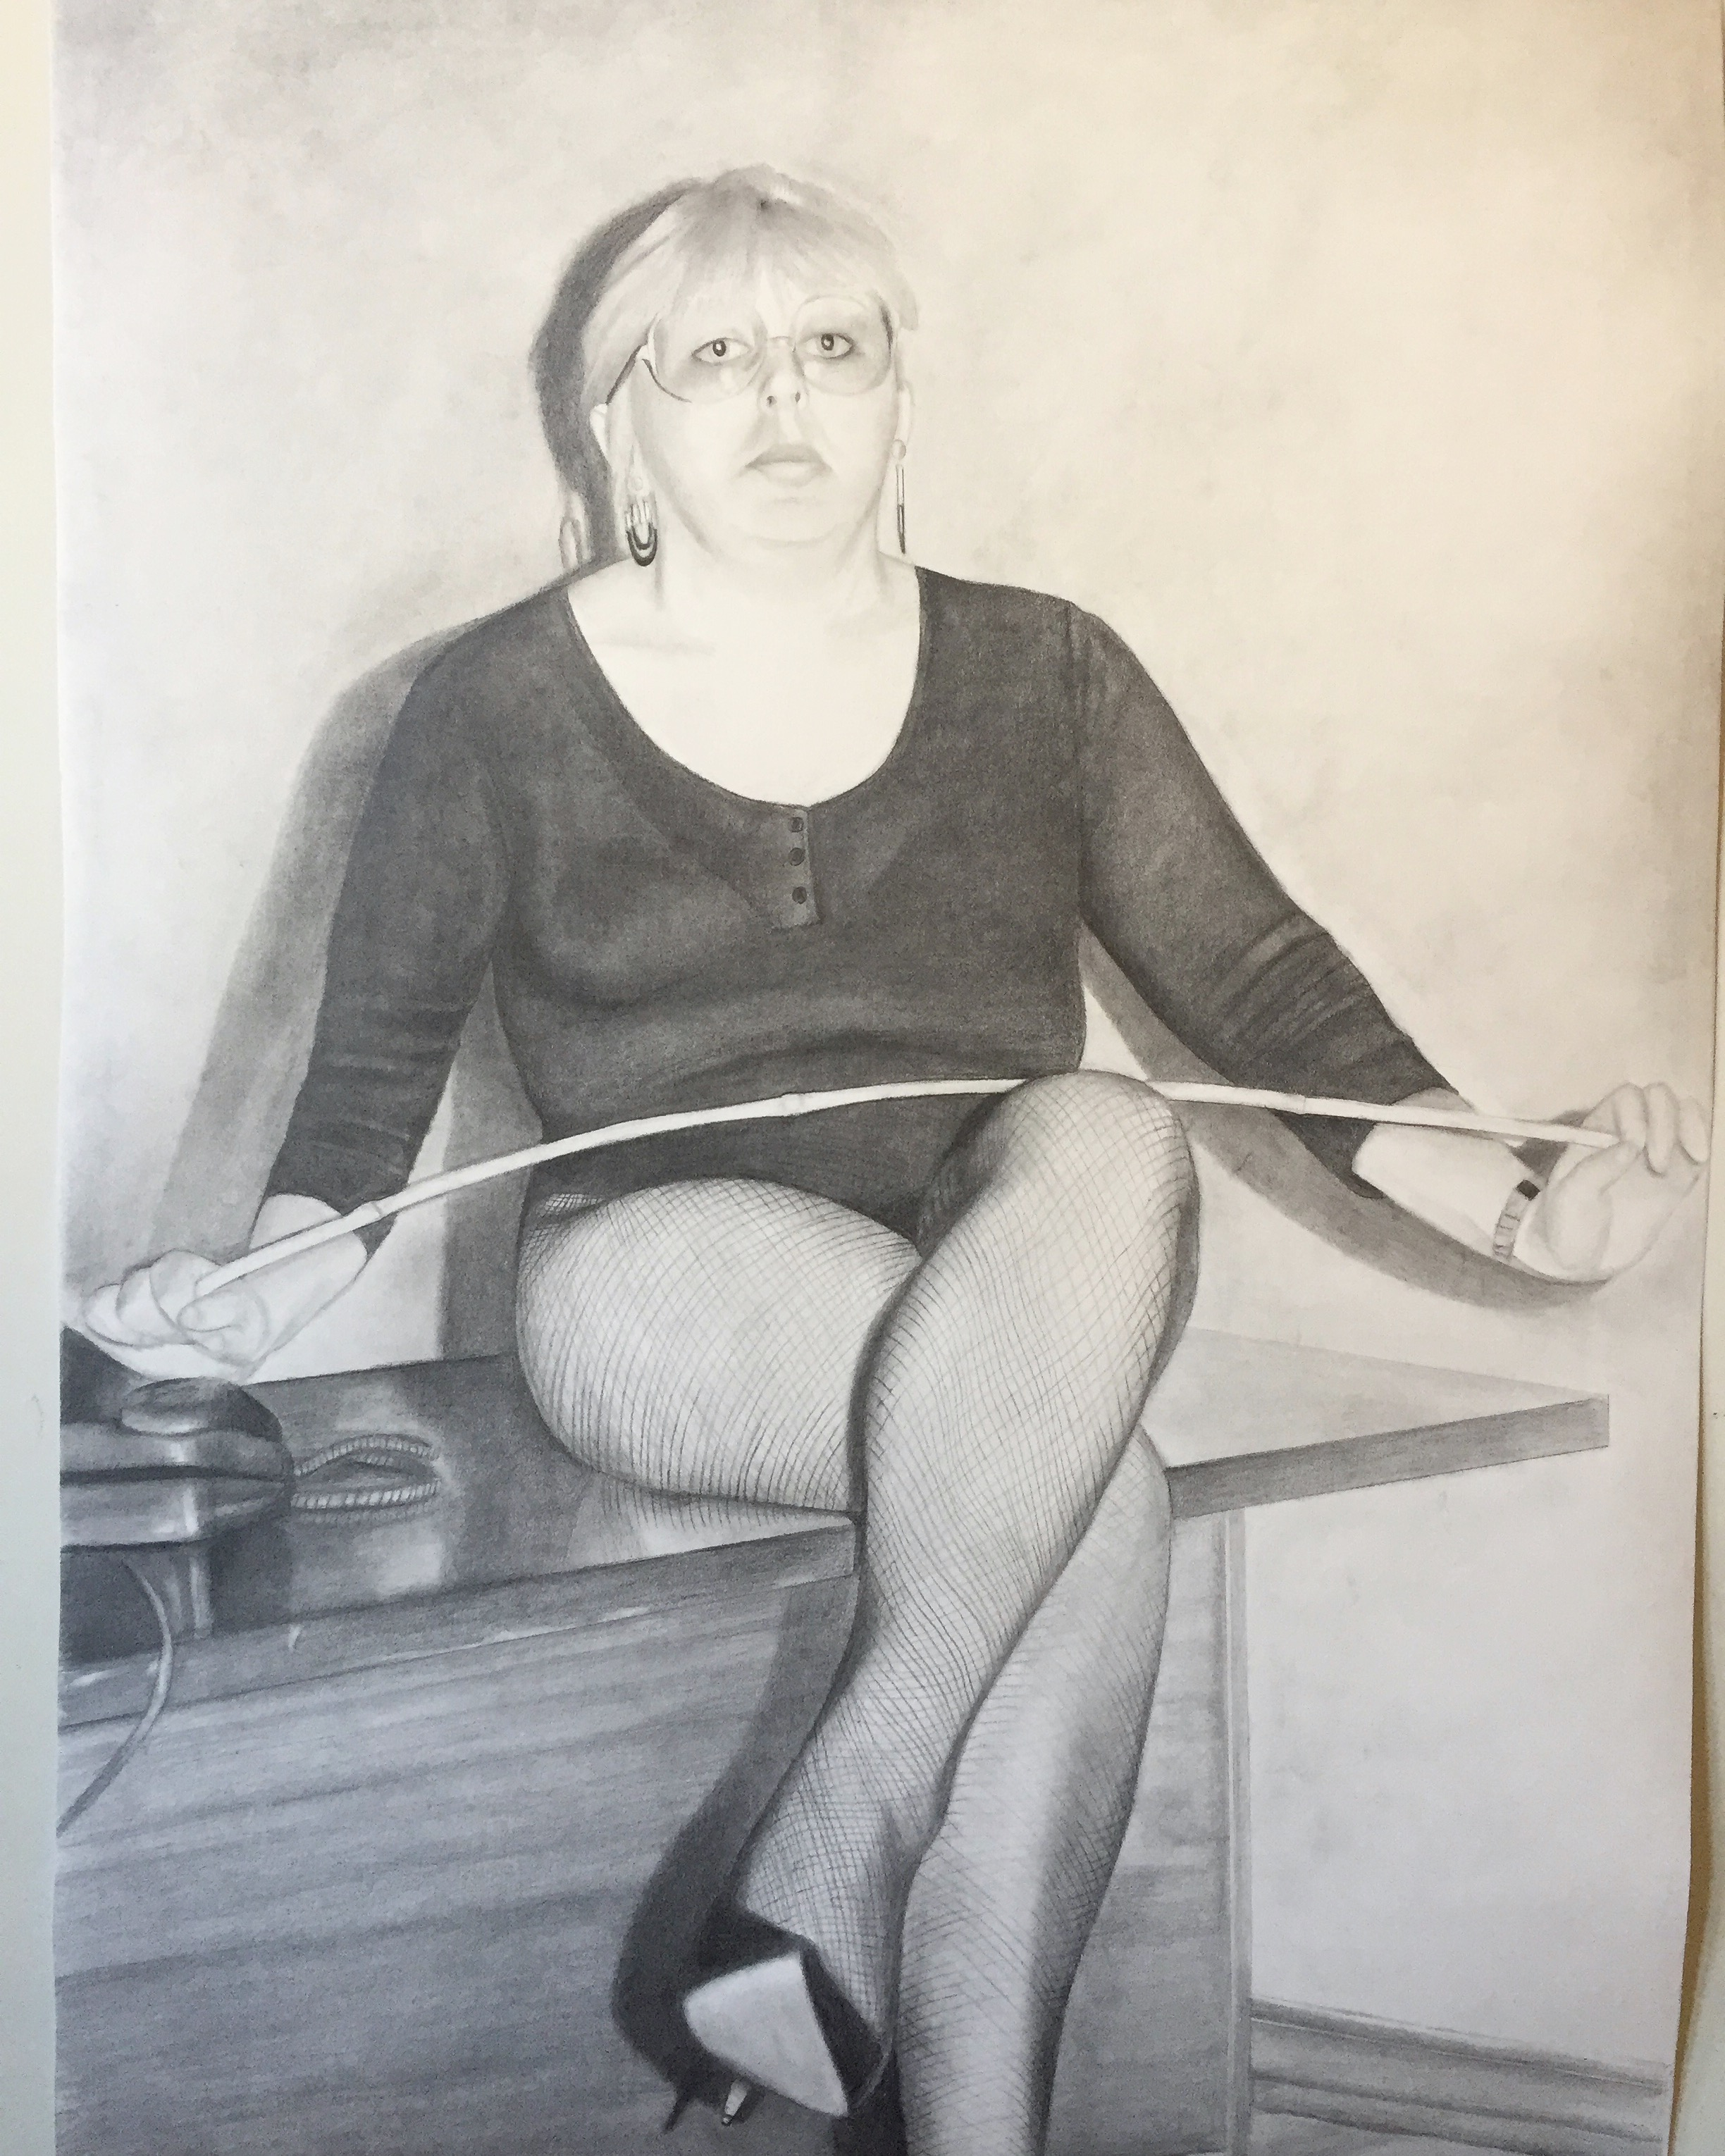 ERICA EYRES, Mona, 2018, pencil on paper, 38 x 28 inches SOLD